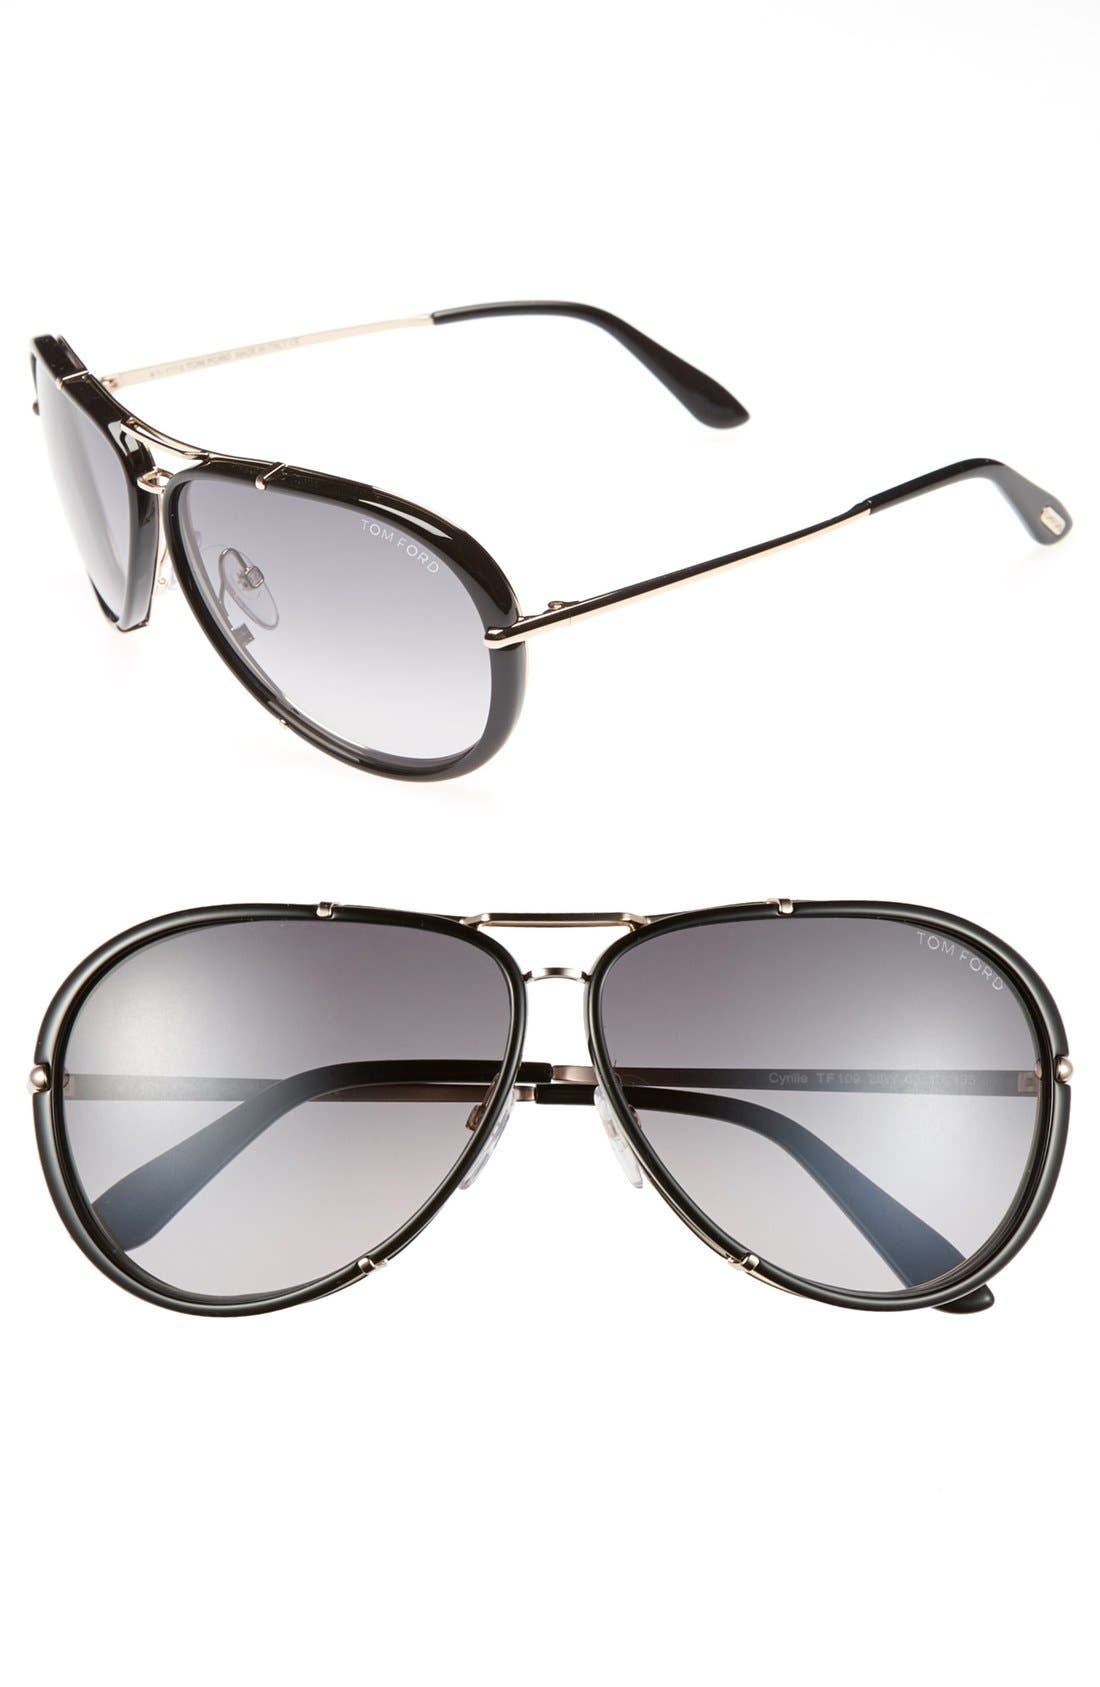 Main Image - Tom Ford 'Cyrille' 63mm Sunglasses